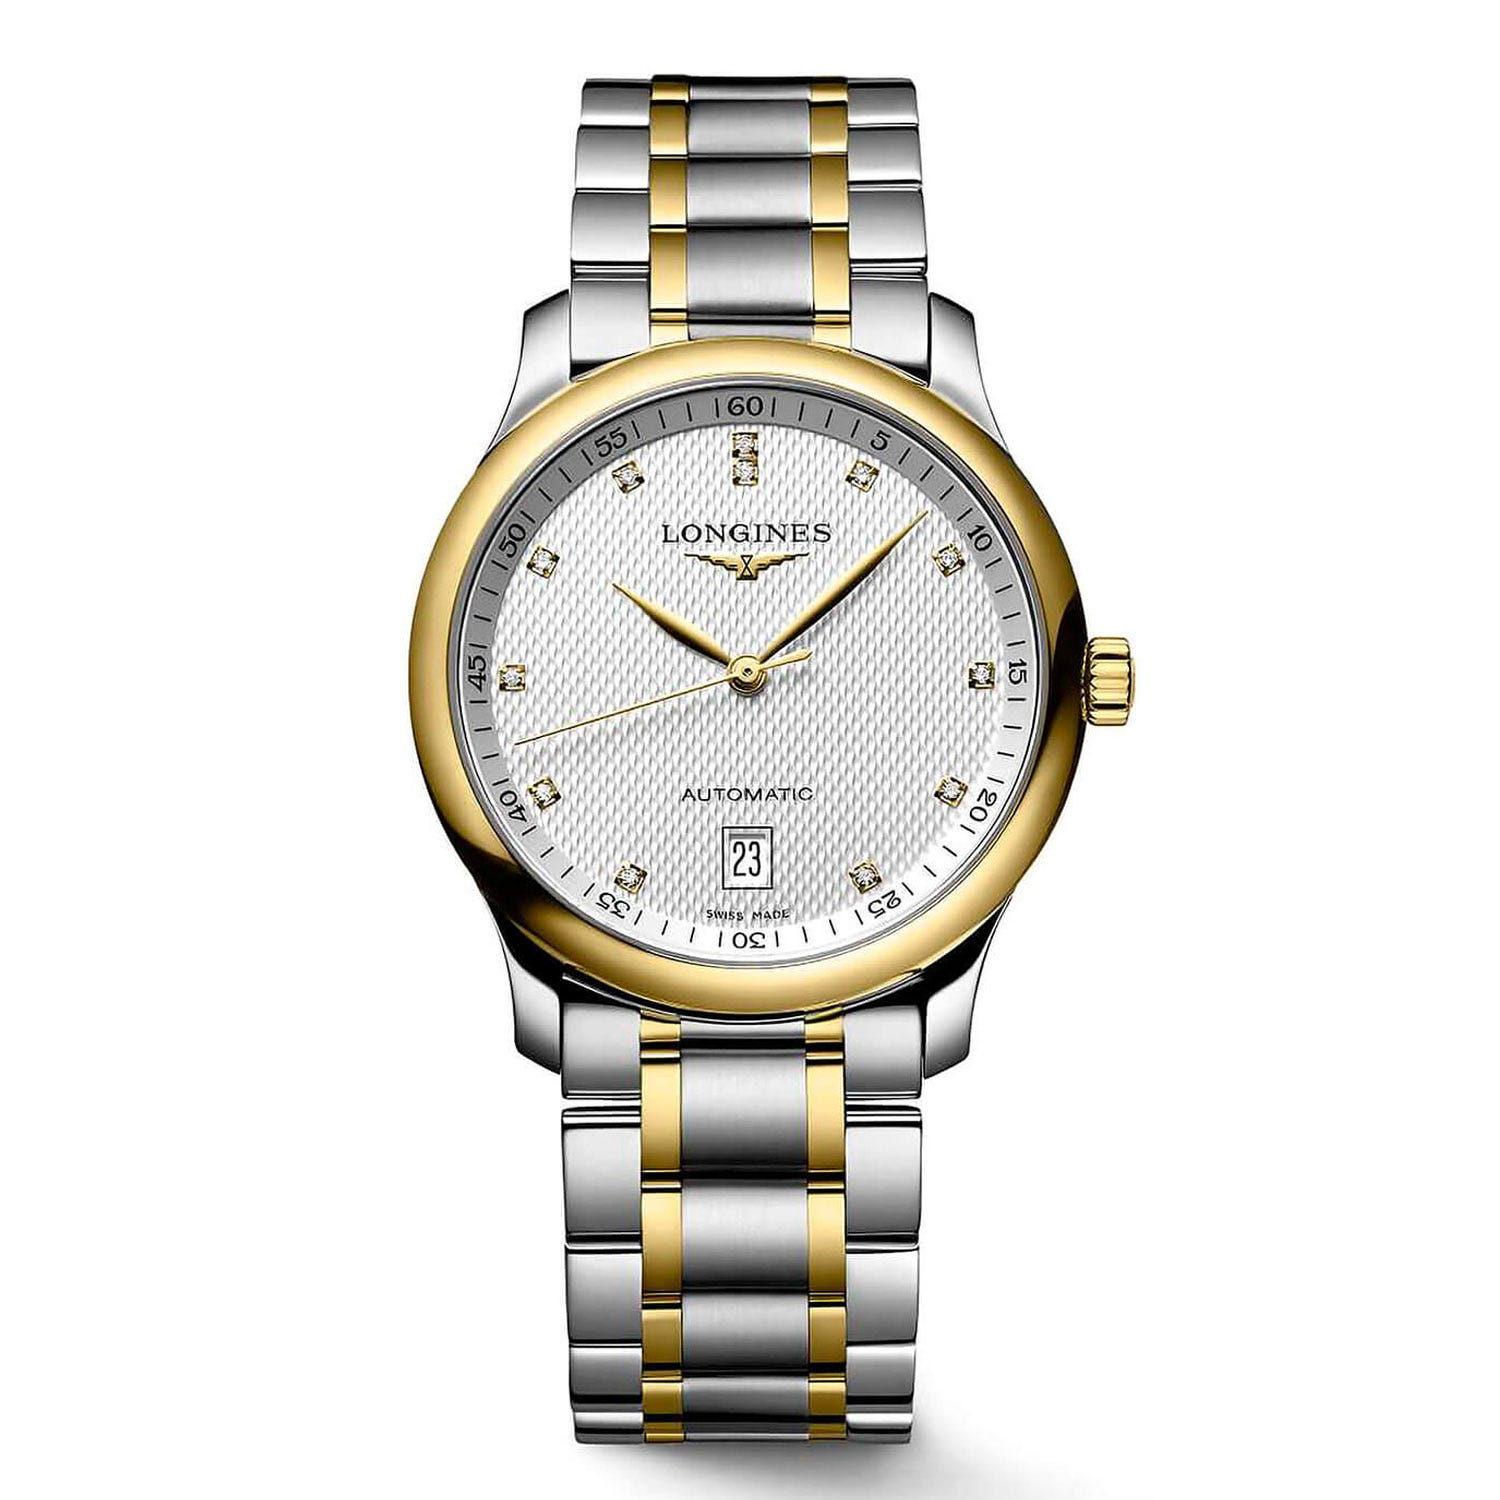 Longines Master Collection automatic men's diamond-set 18ct gold and Stainless Steel watch